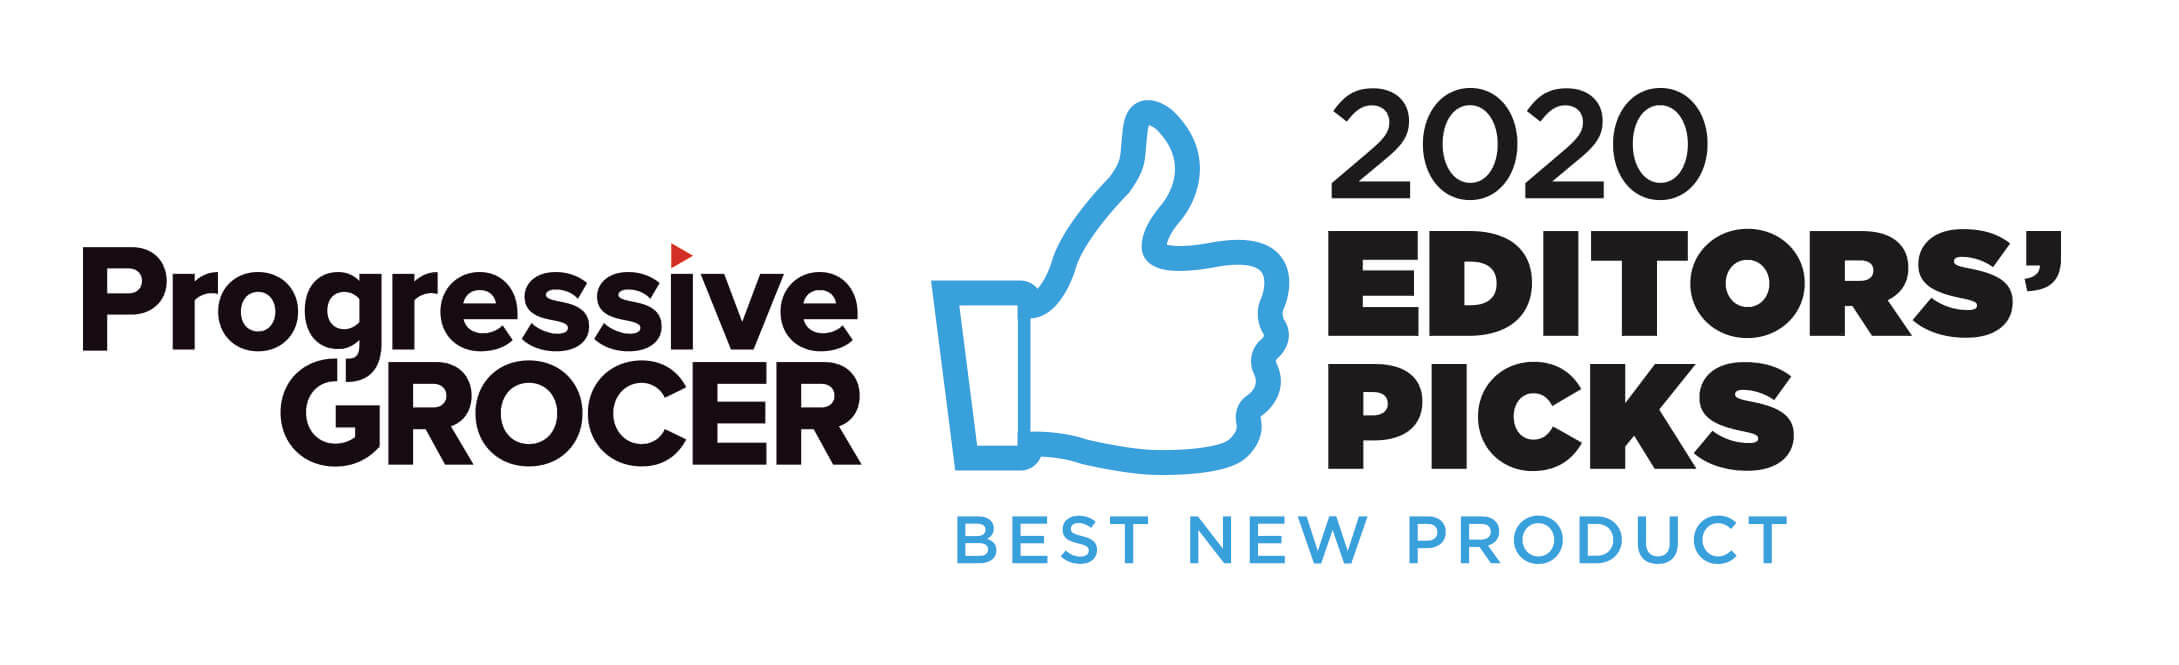 Progressive Grocer 2020 Editors' Picks Best New Product